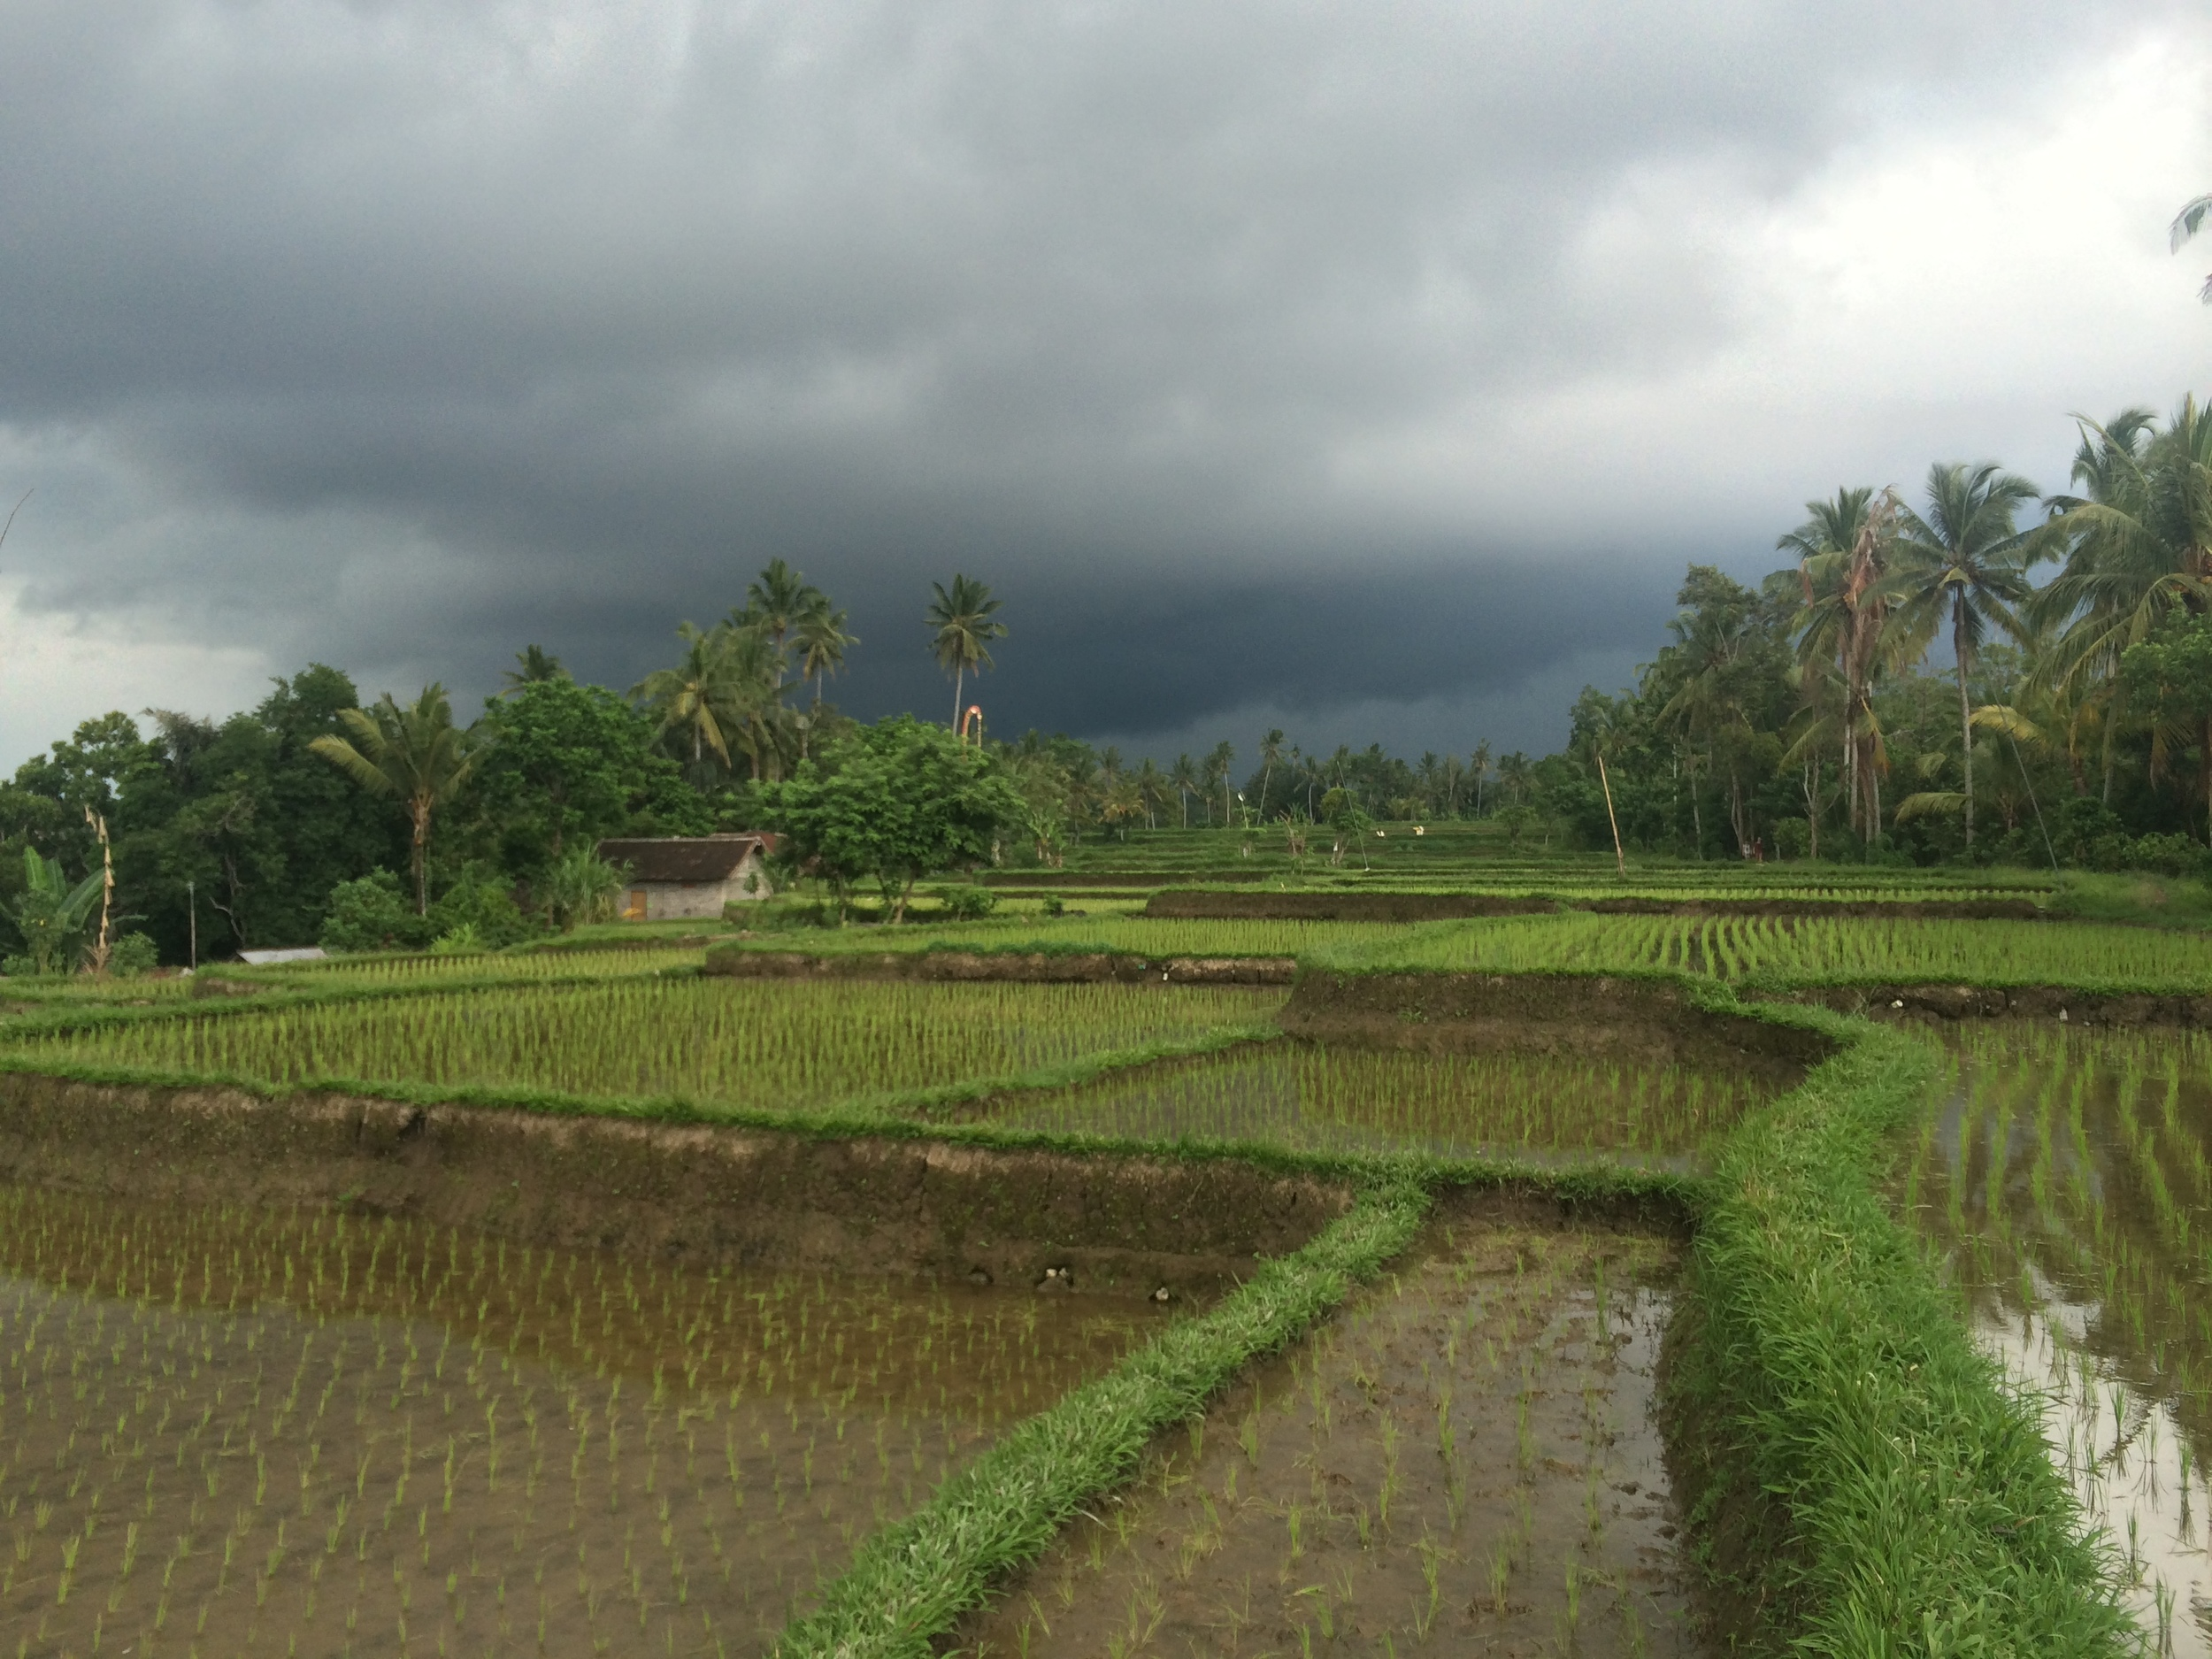 Lovely rice paddies that look freshly planted